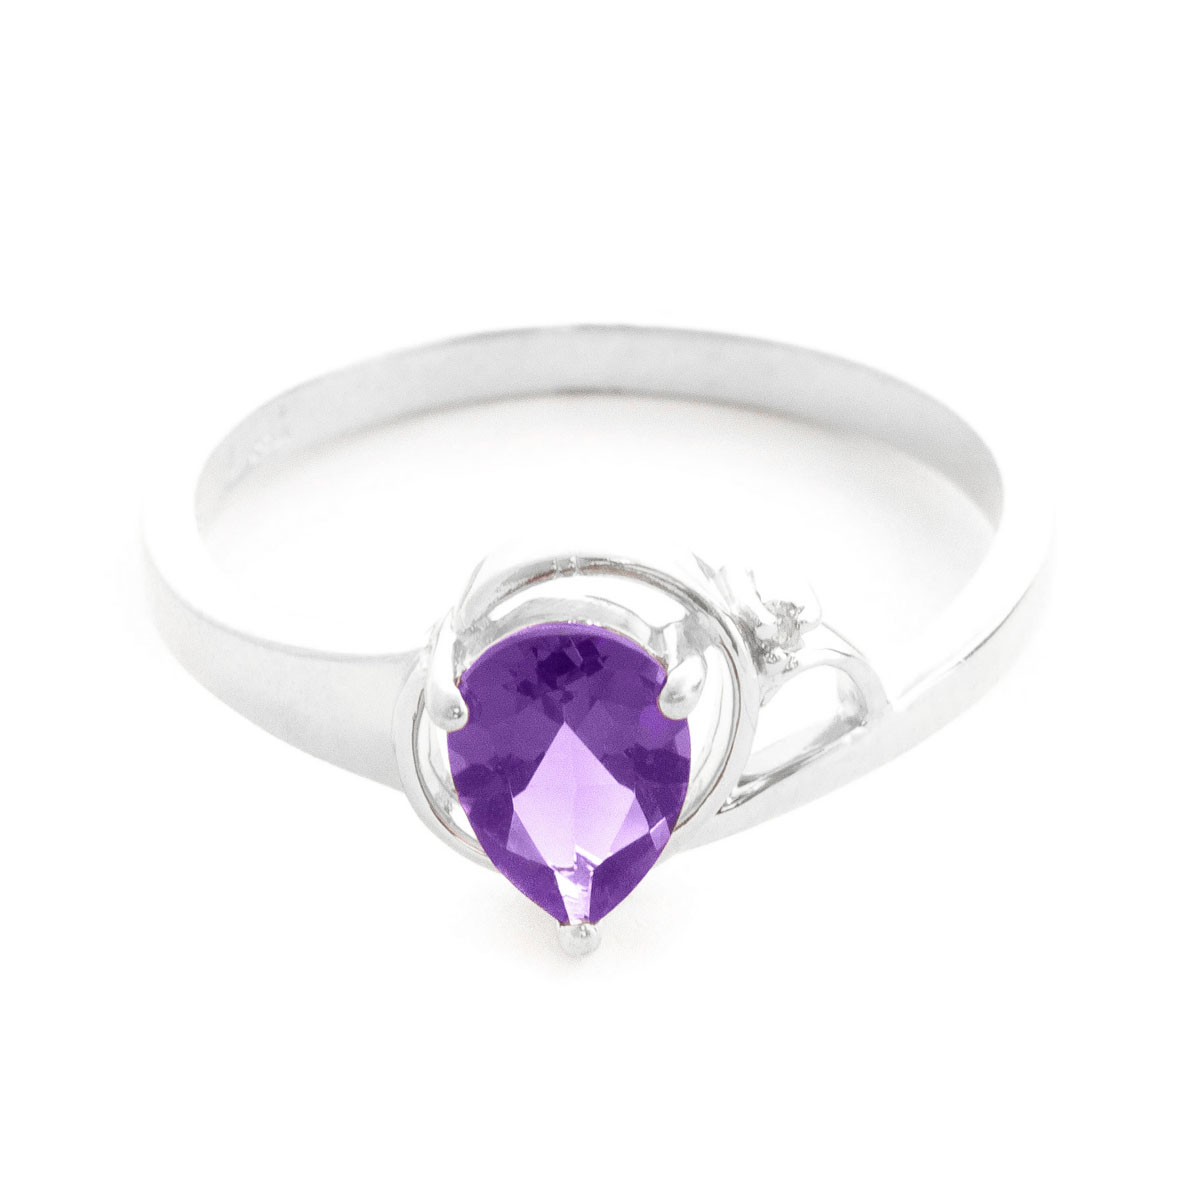 Amethyst & Diamond Glow Ring in 9ct White Gold